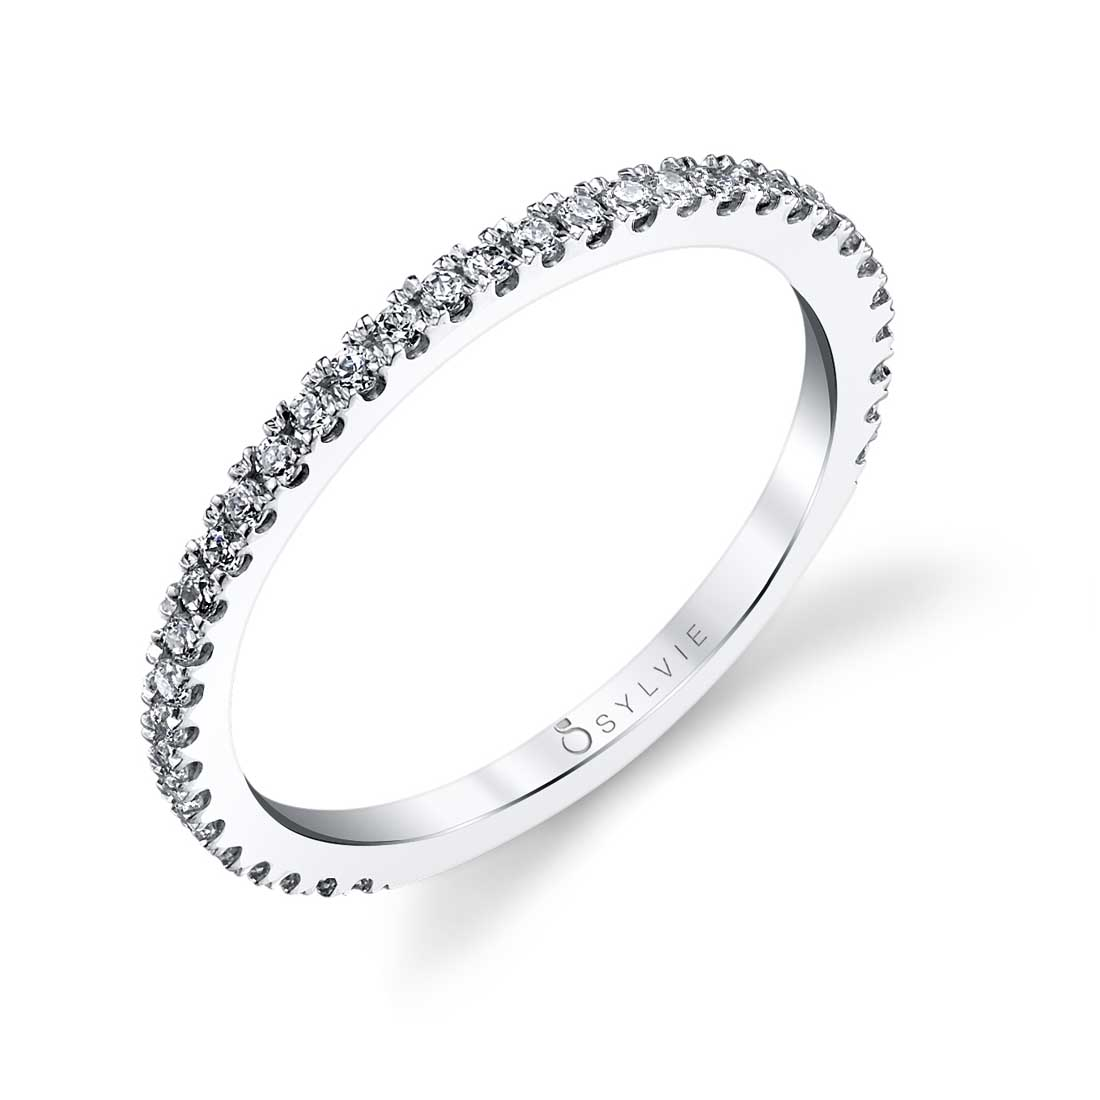 Profile Image of a Cushion Cut Engagement Ring with Halo